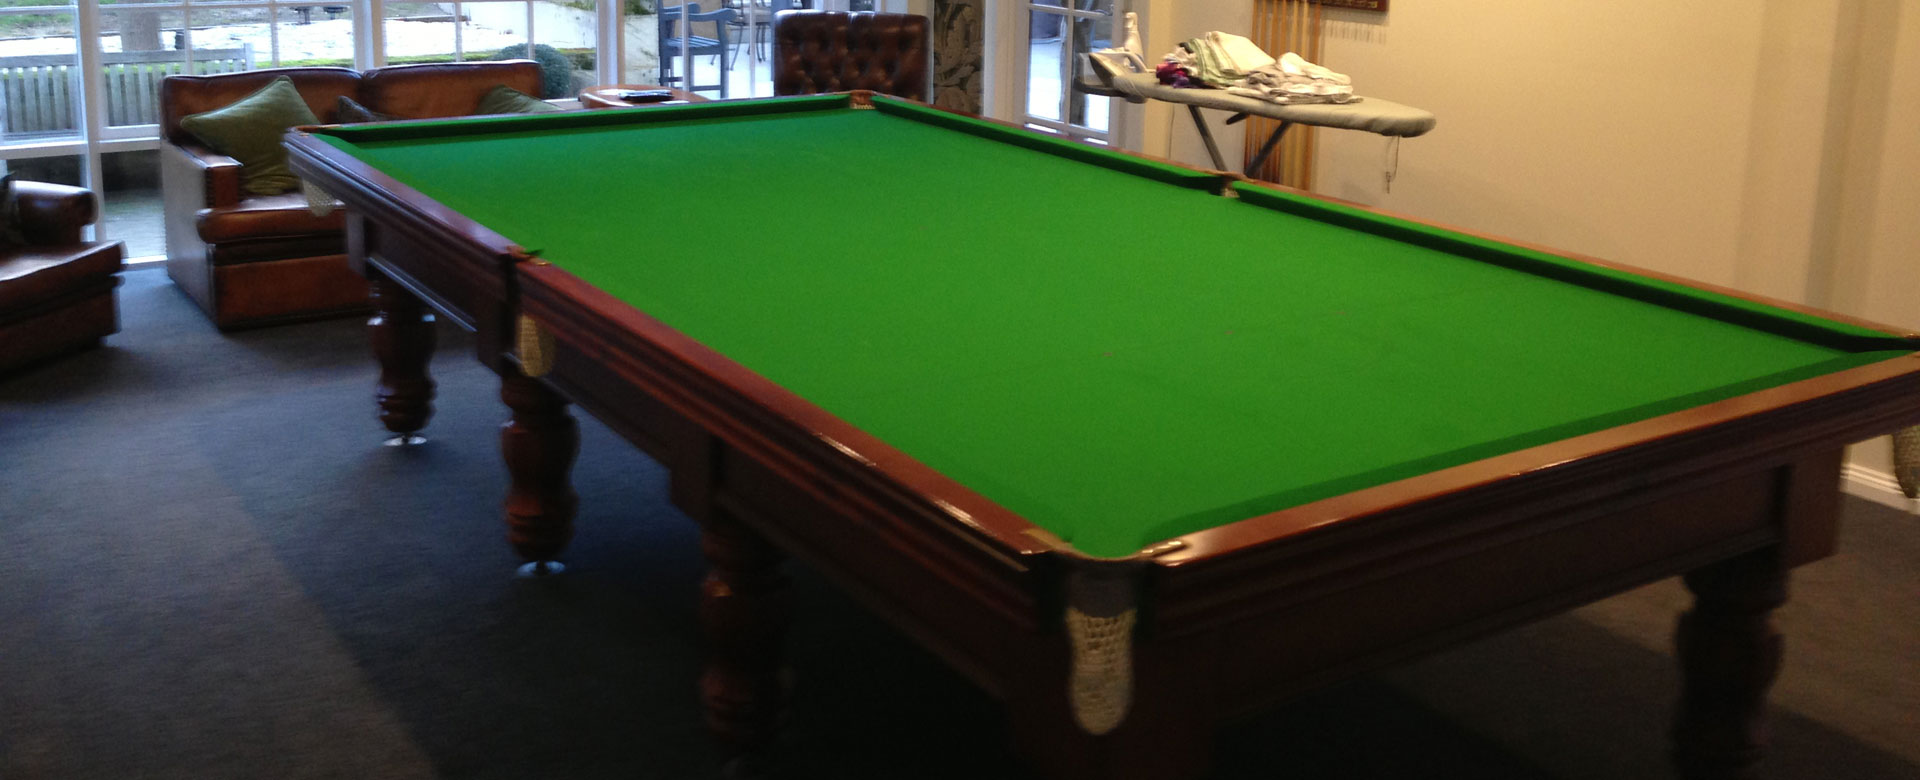 Pool Table Removals Edmonton